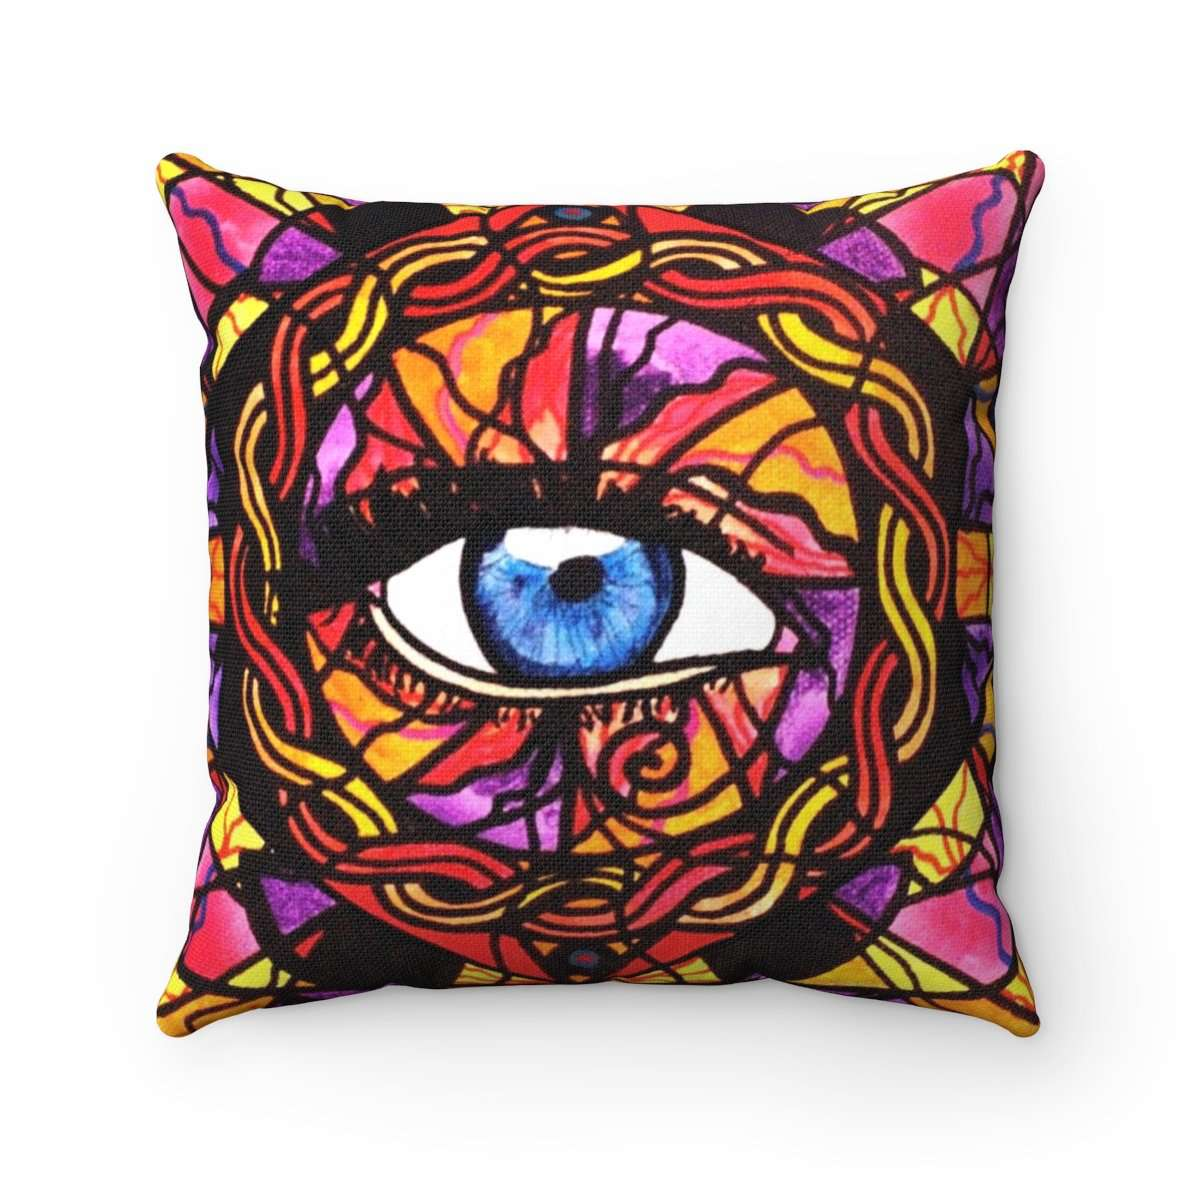 Confident Self Expression - Spun Polyester Square Pillow